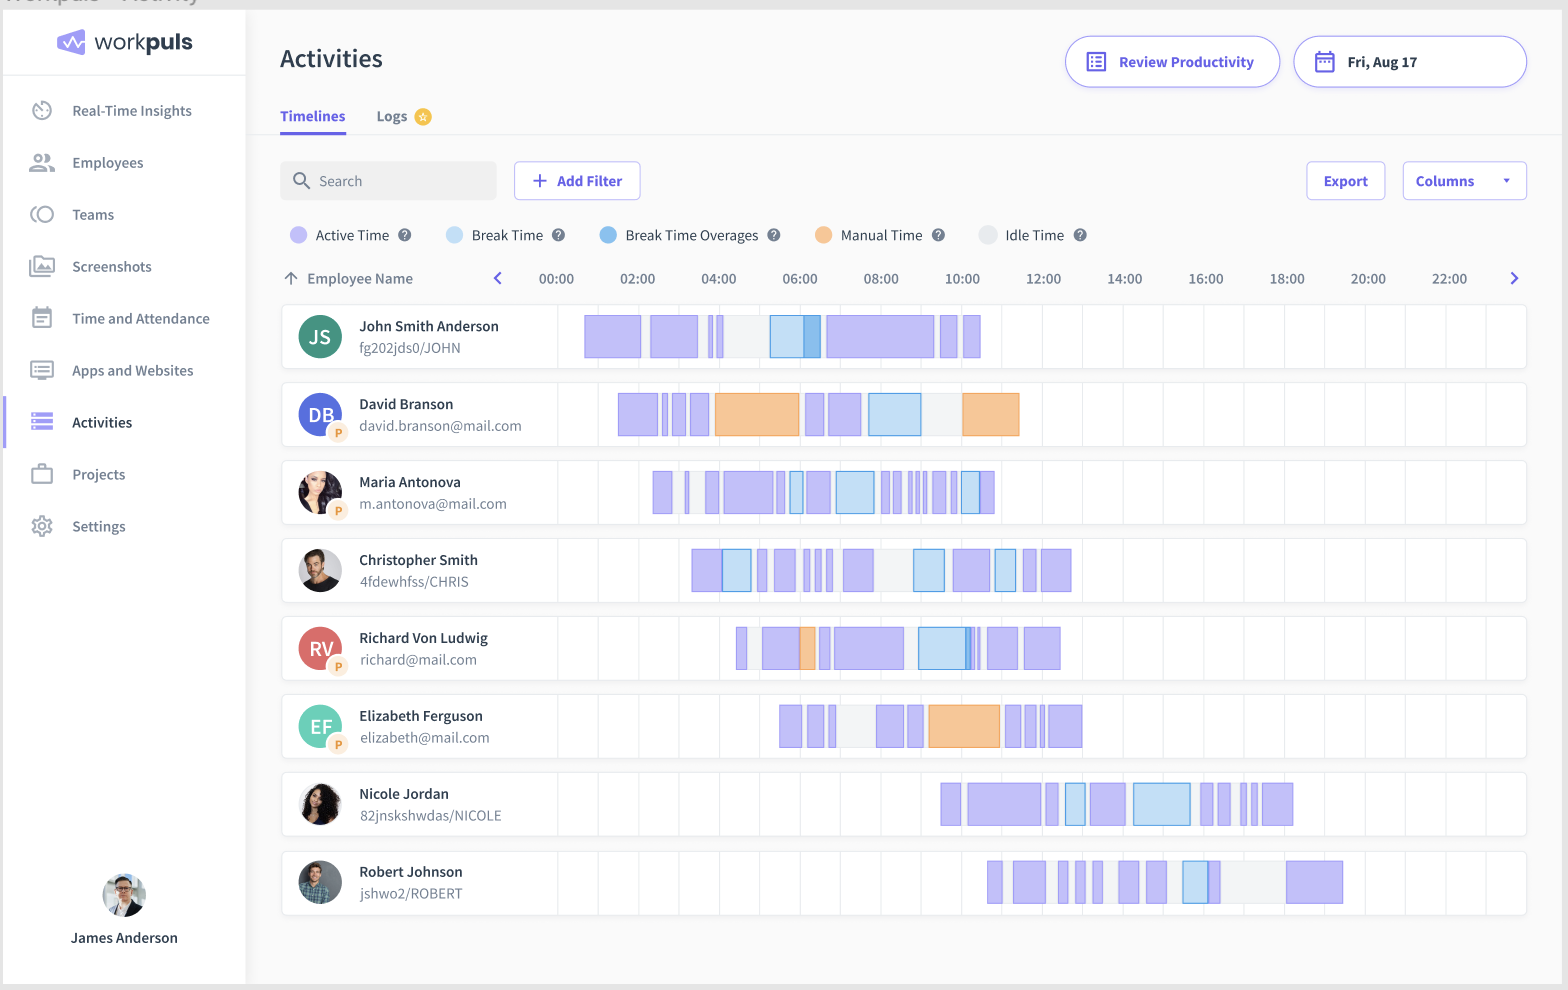 workpuls timelines feature